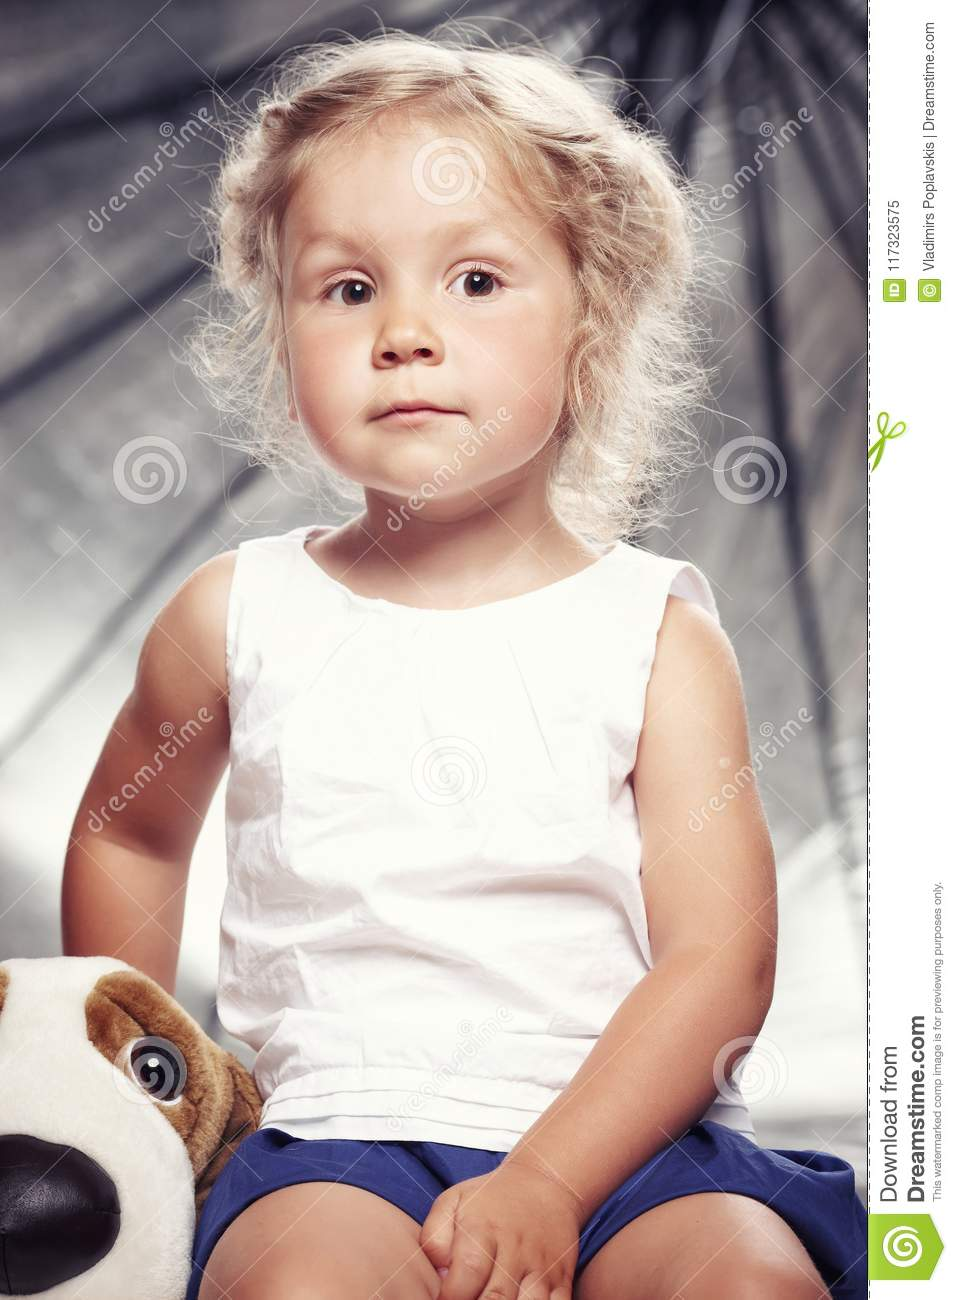 Portrait of a cute little girl in casual dress sitting with a plush toy in studio.